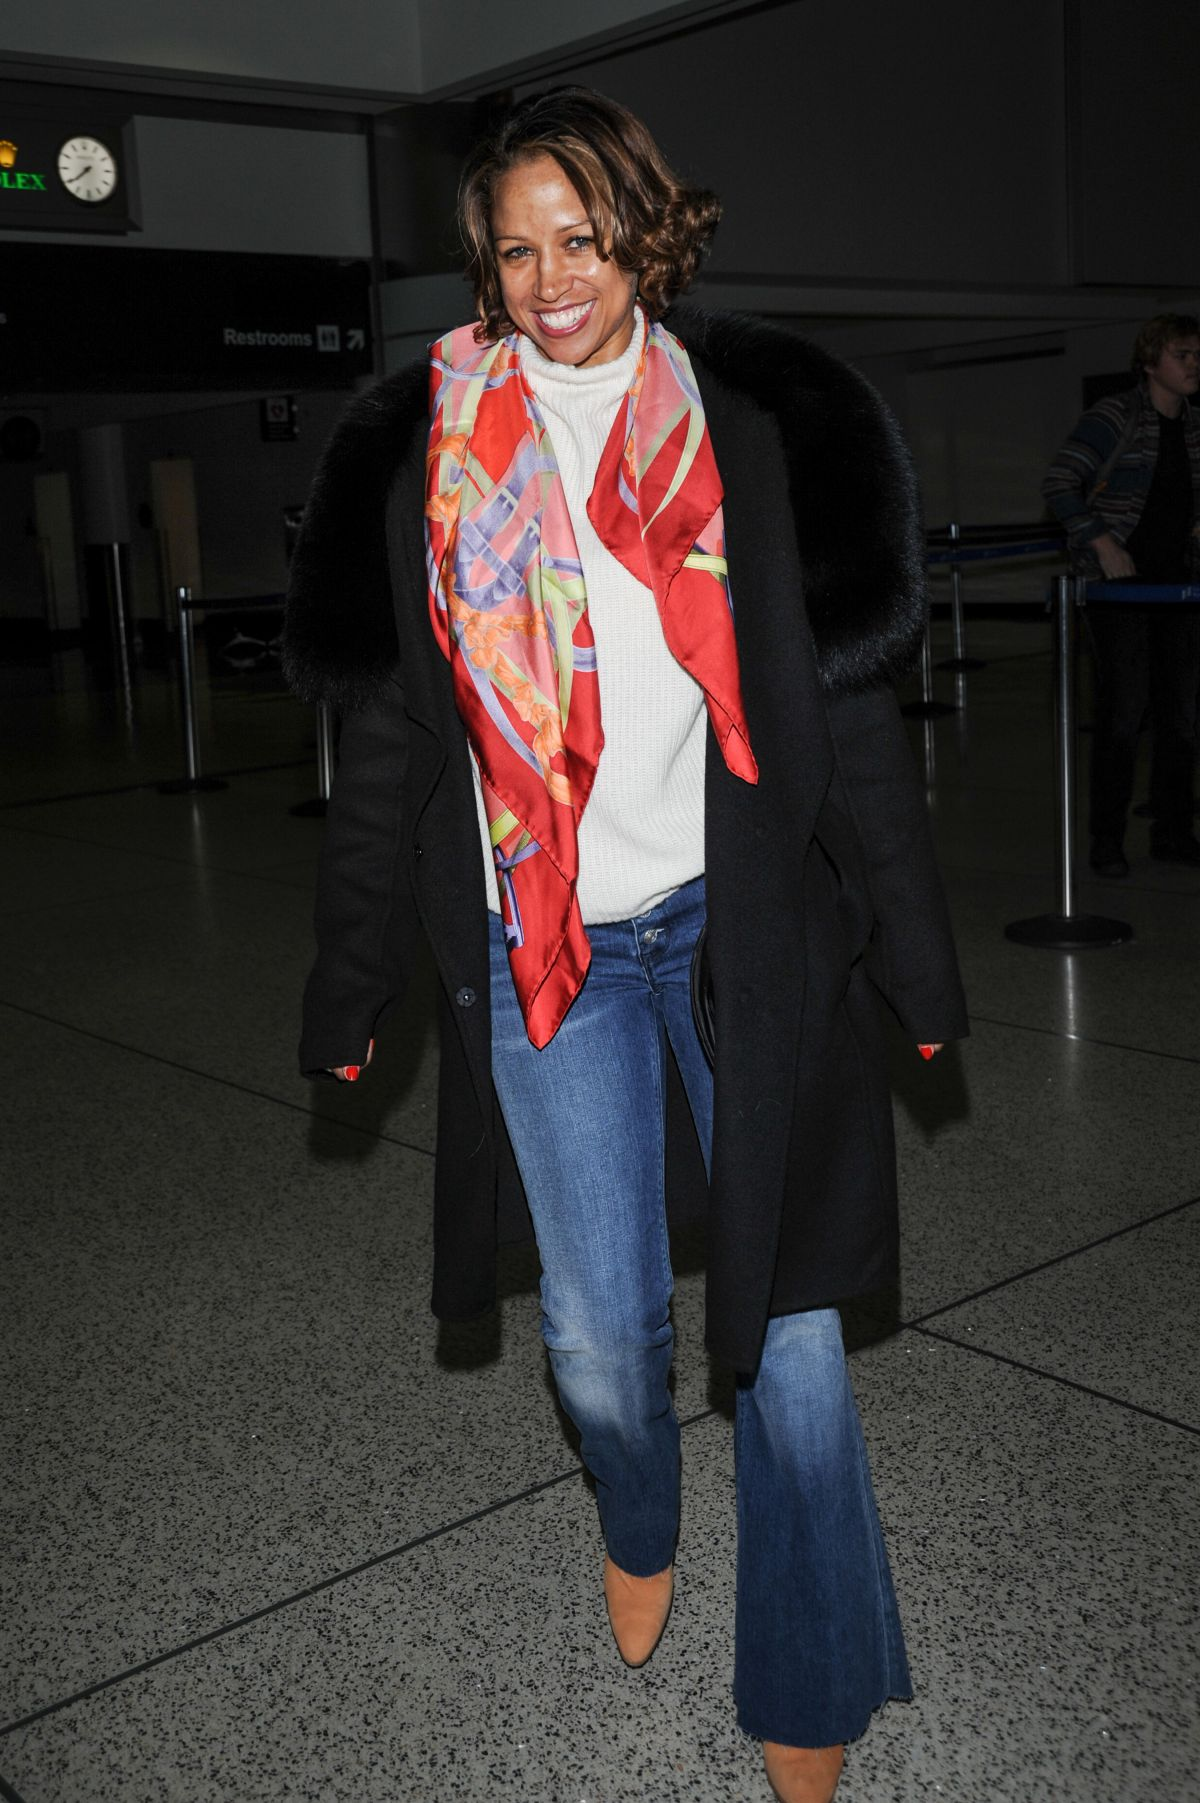 STACEY DASH at LAX Airport in Los Angeles 03/06/2016